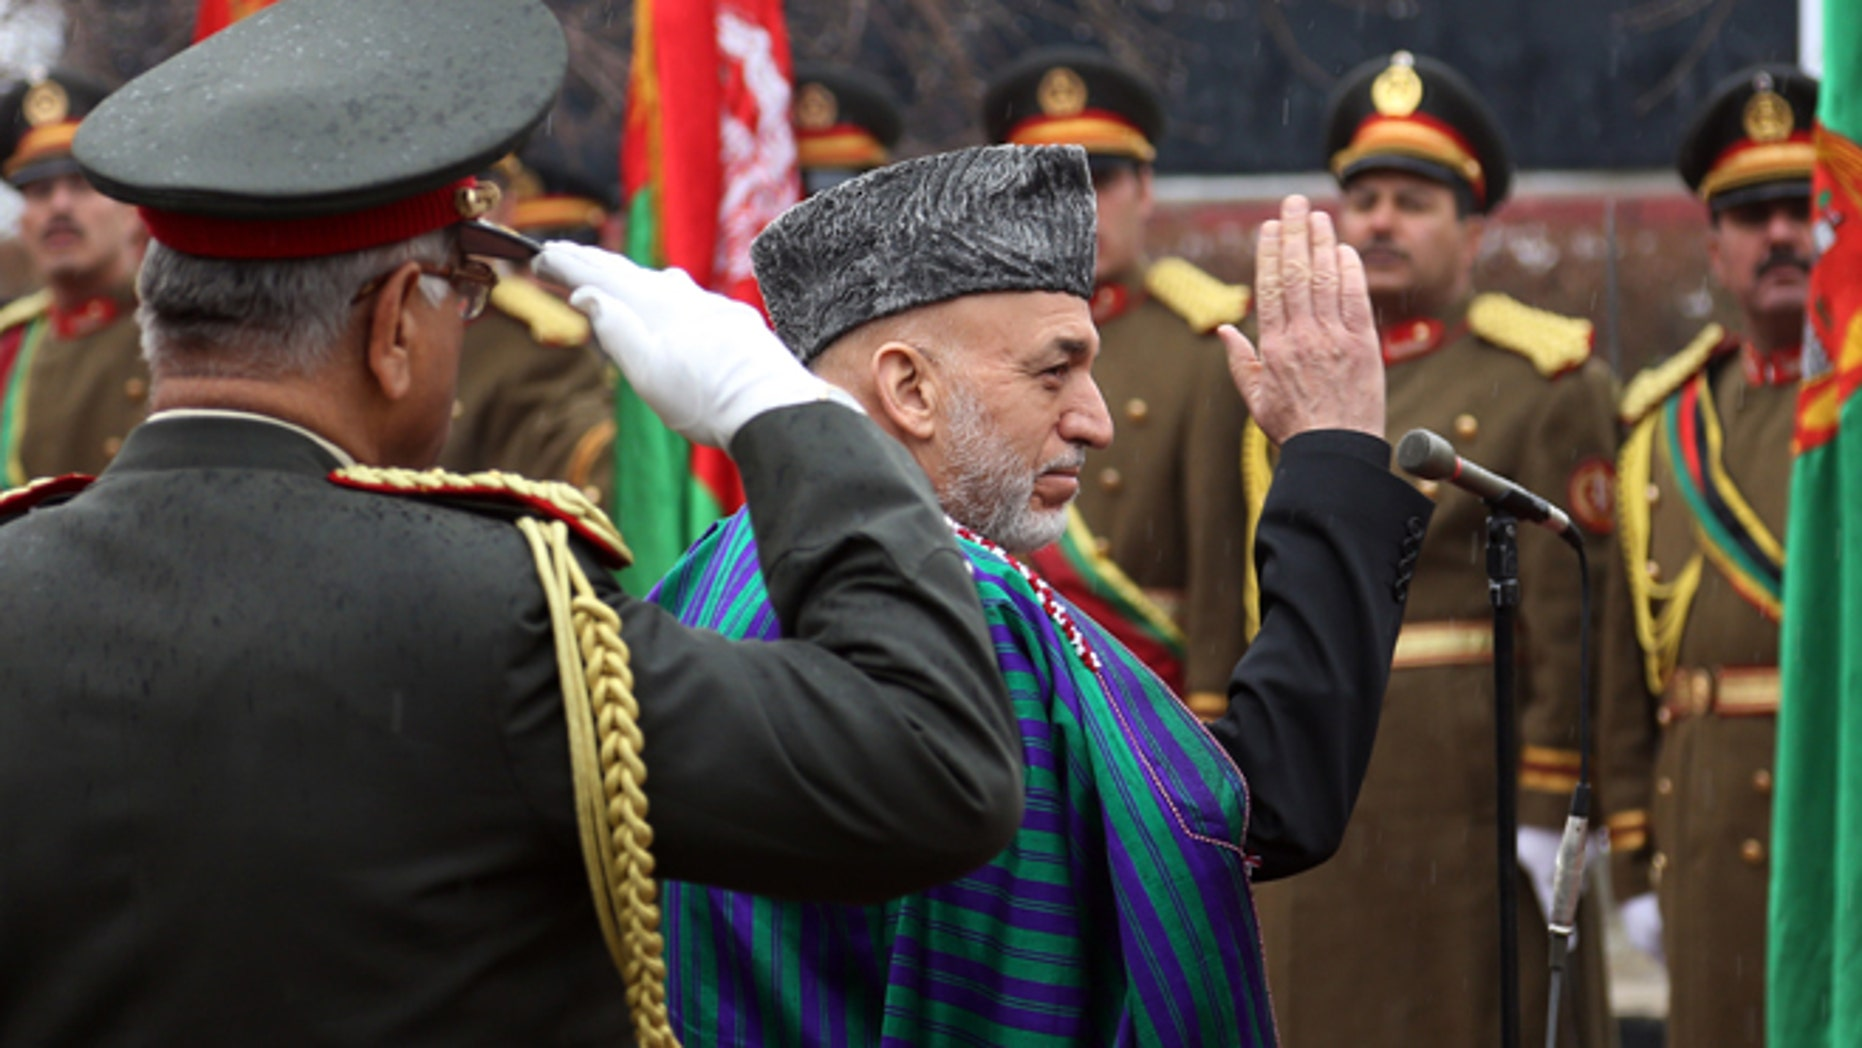 March 15: Afghan President Hamid Karzai arrives at an opening session at the parliament house in Kabul.